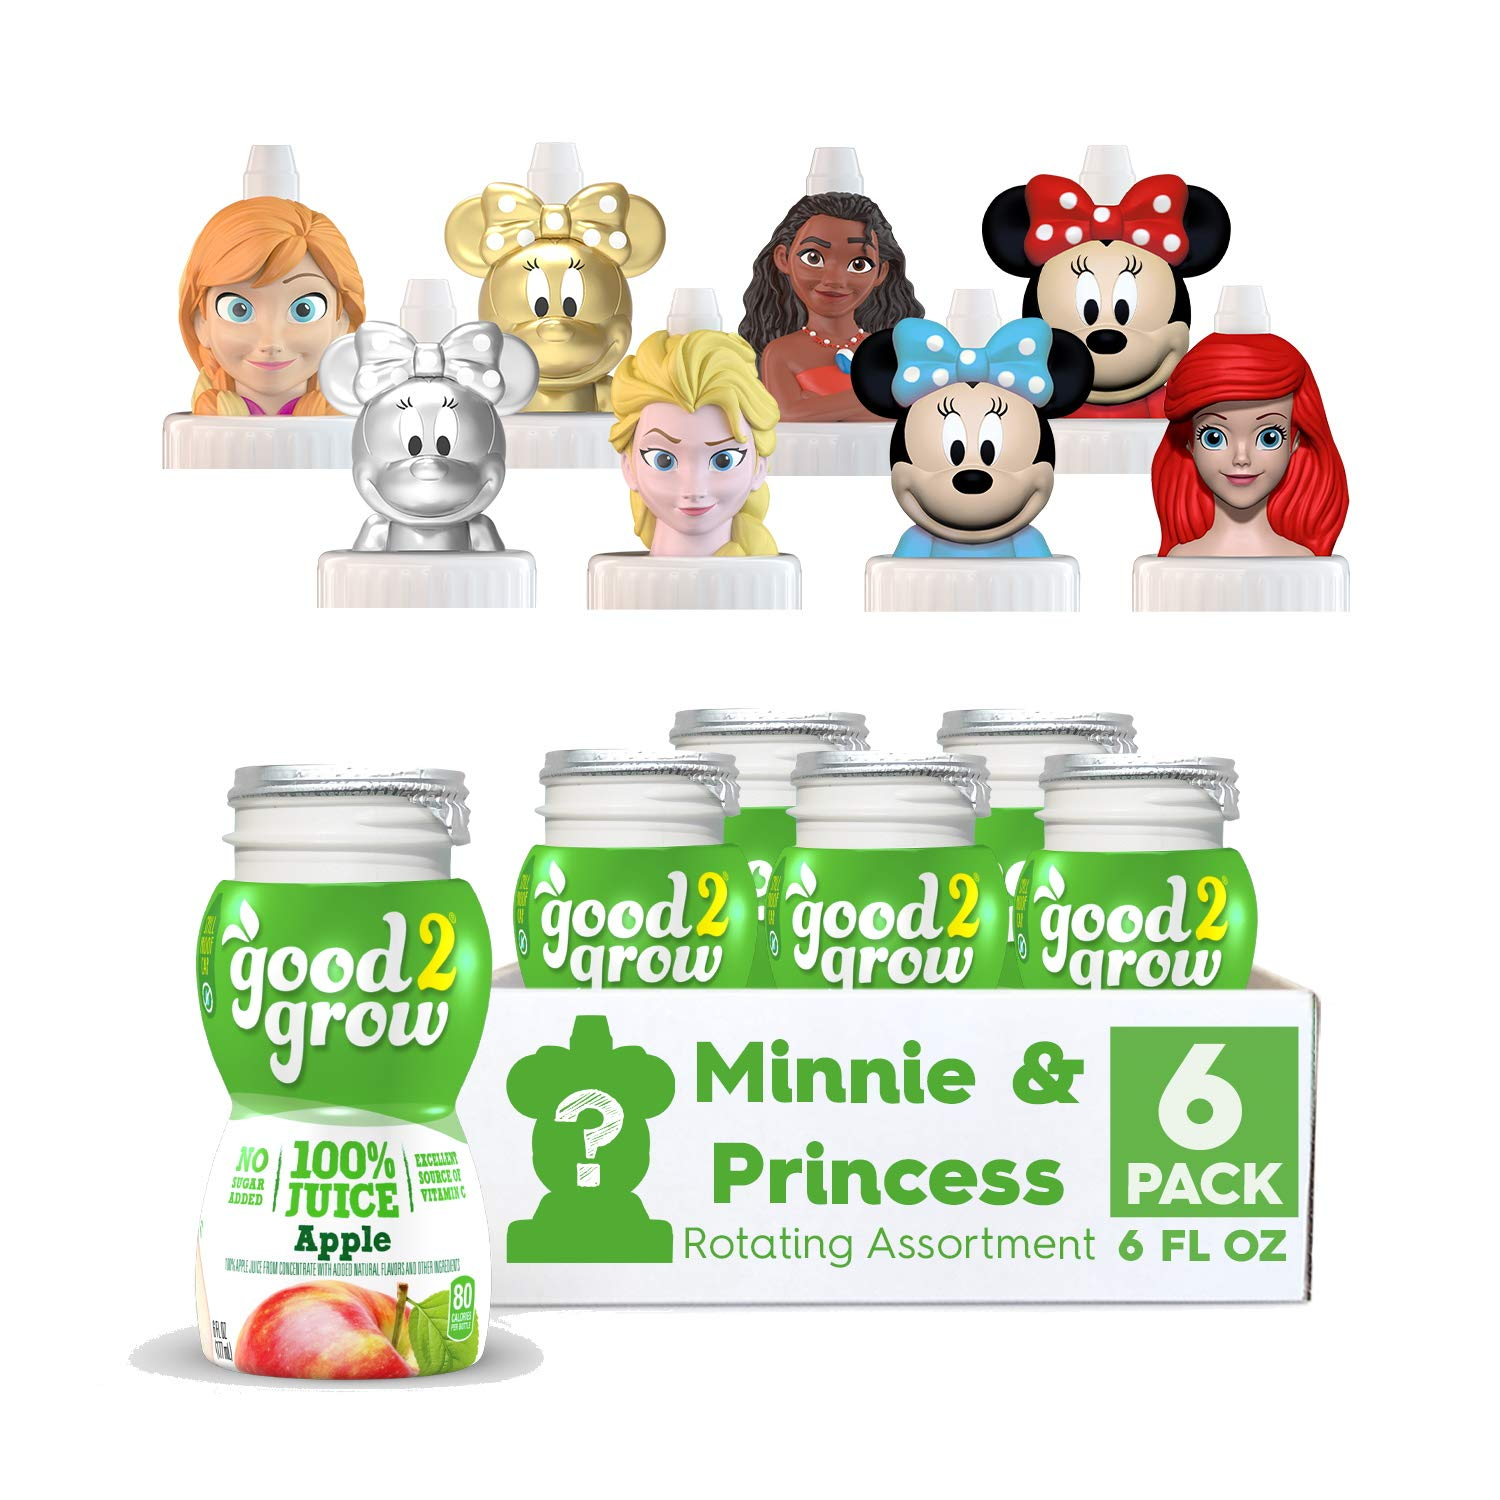 good2grow Minnie and Disney Princess Rotating Character 6 Pack Apple Juice, 6oz- Spill Proof Character Top Bottles, Non-GMO w/no Sugar Added and Excellent Source of Vitamin C, Character Tops May Vary